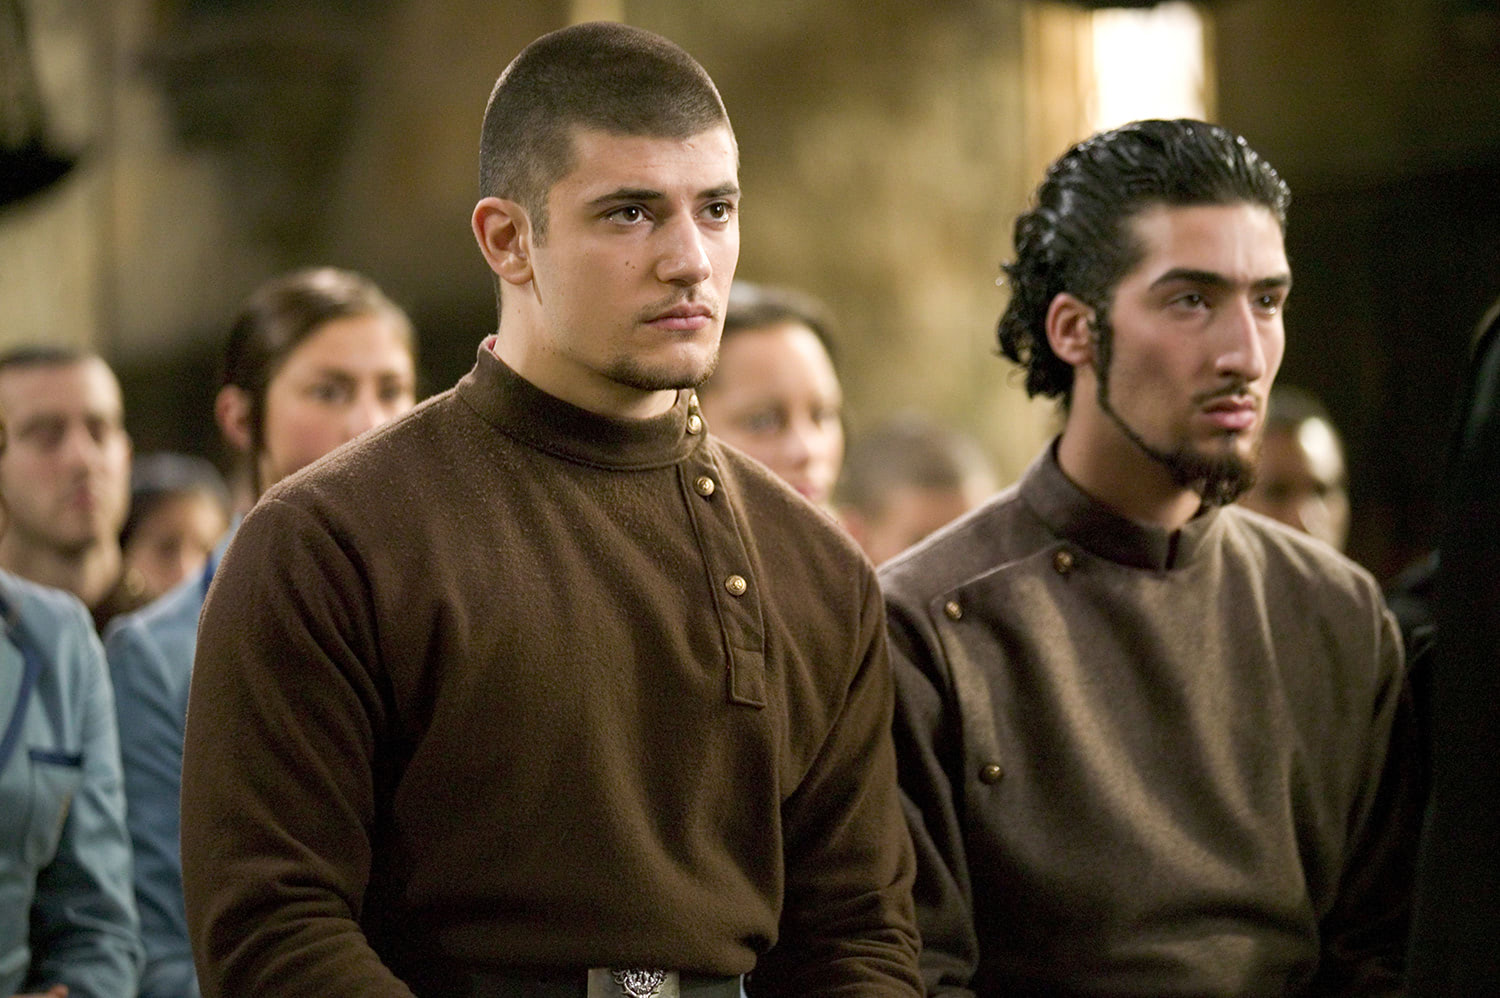 Viktor Krum at Hogwarts